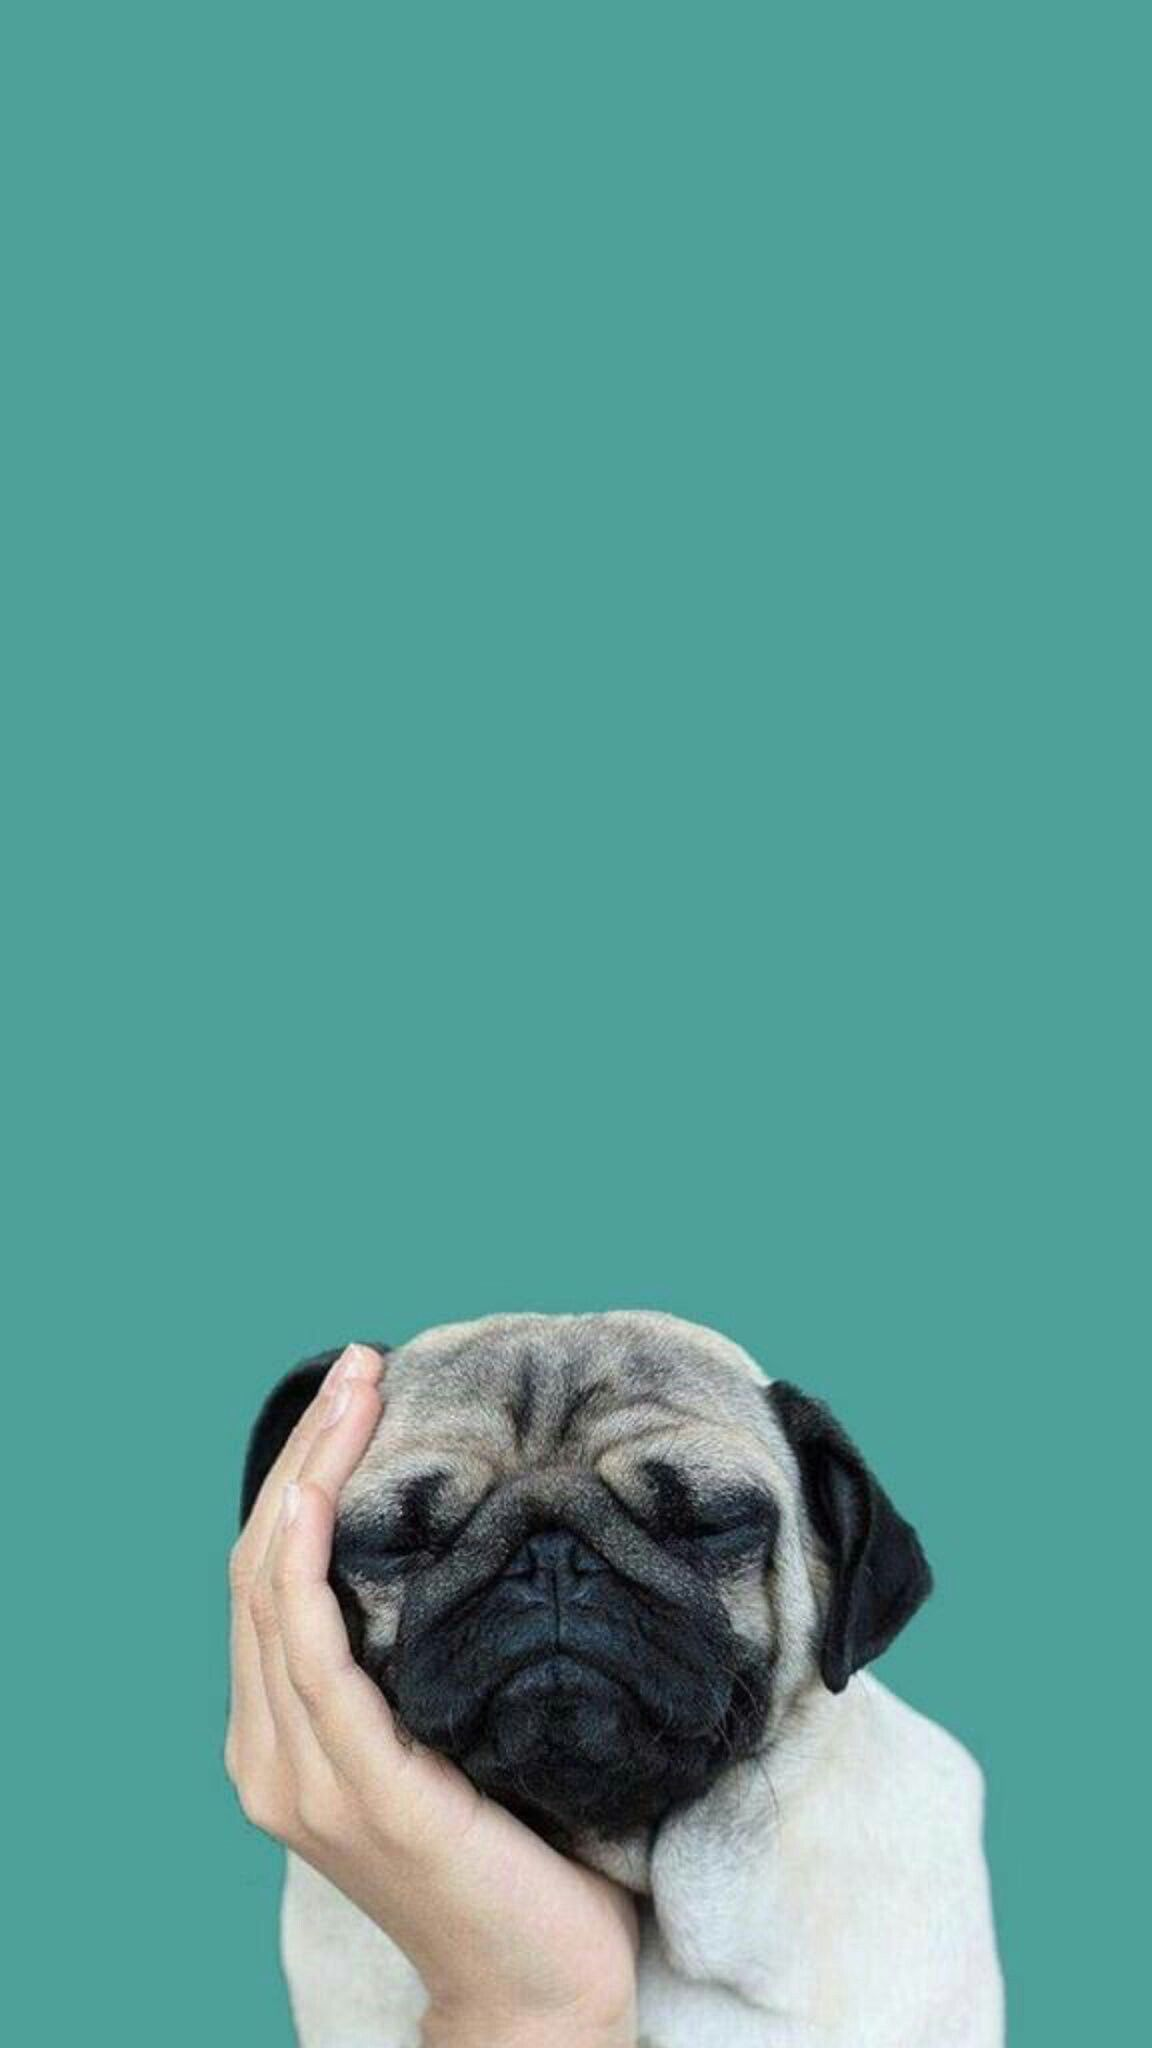 Pug Iphone Wallpapers Top Free Pug Iphone Backgrounds Wallpaperaccess